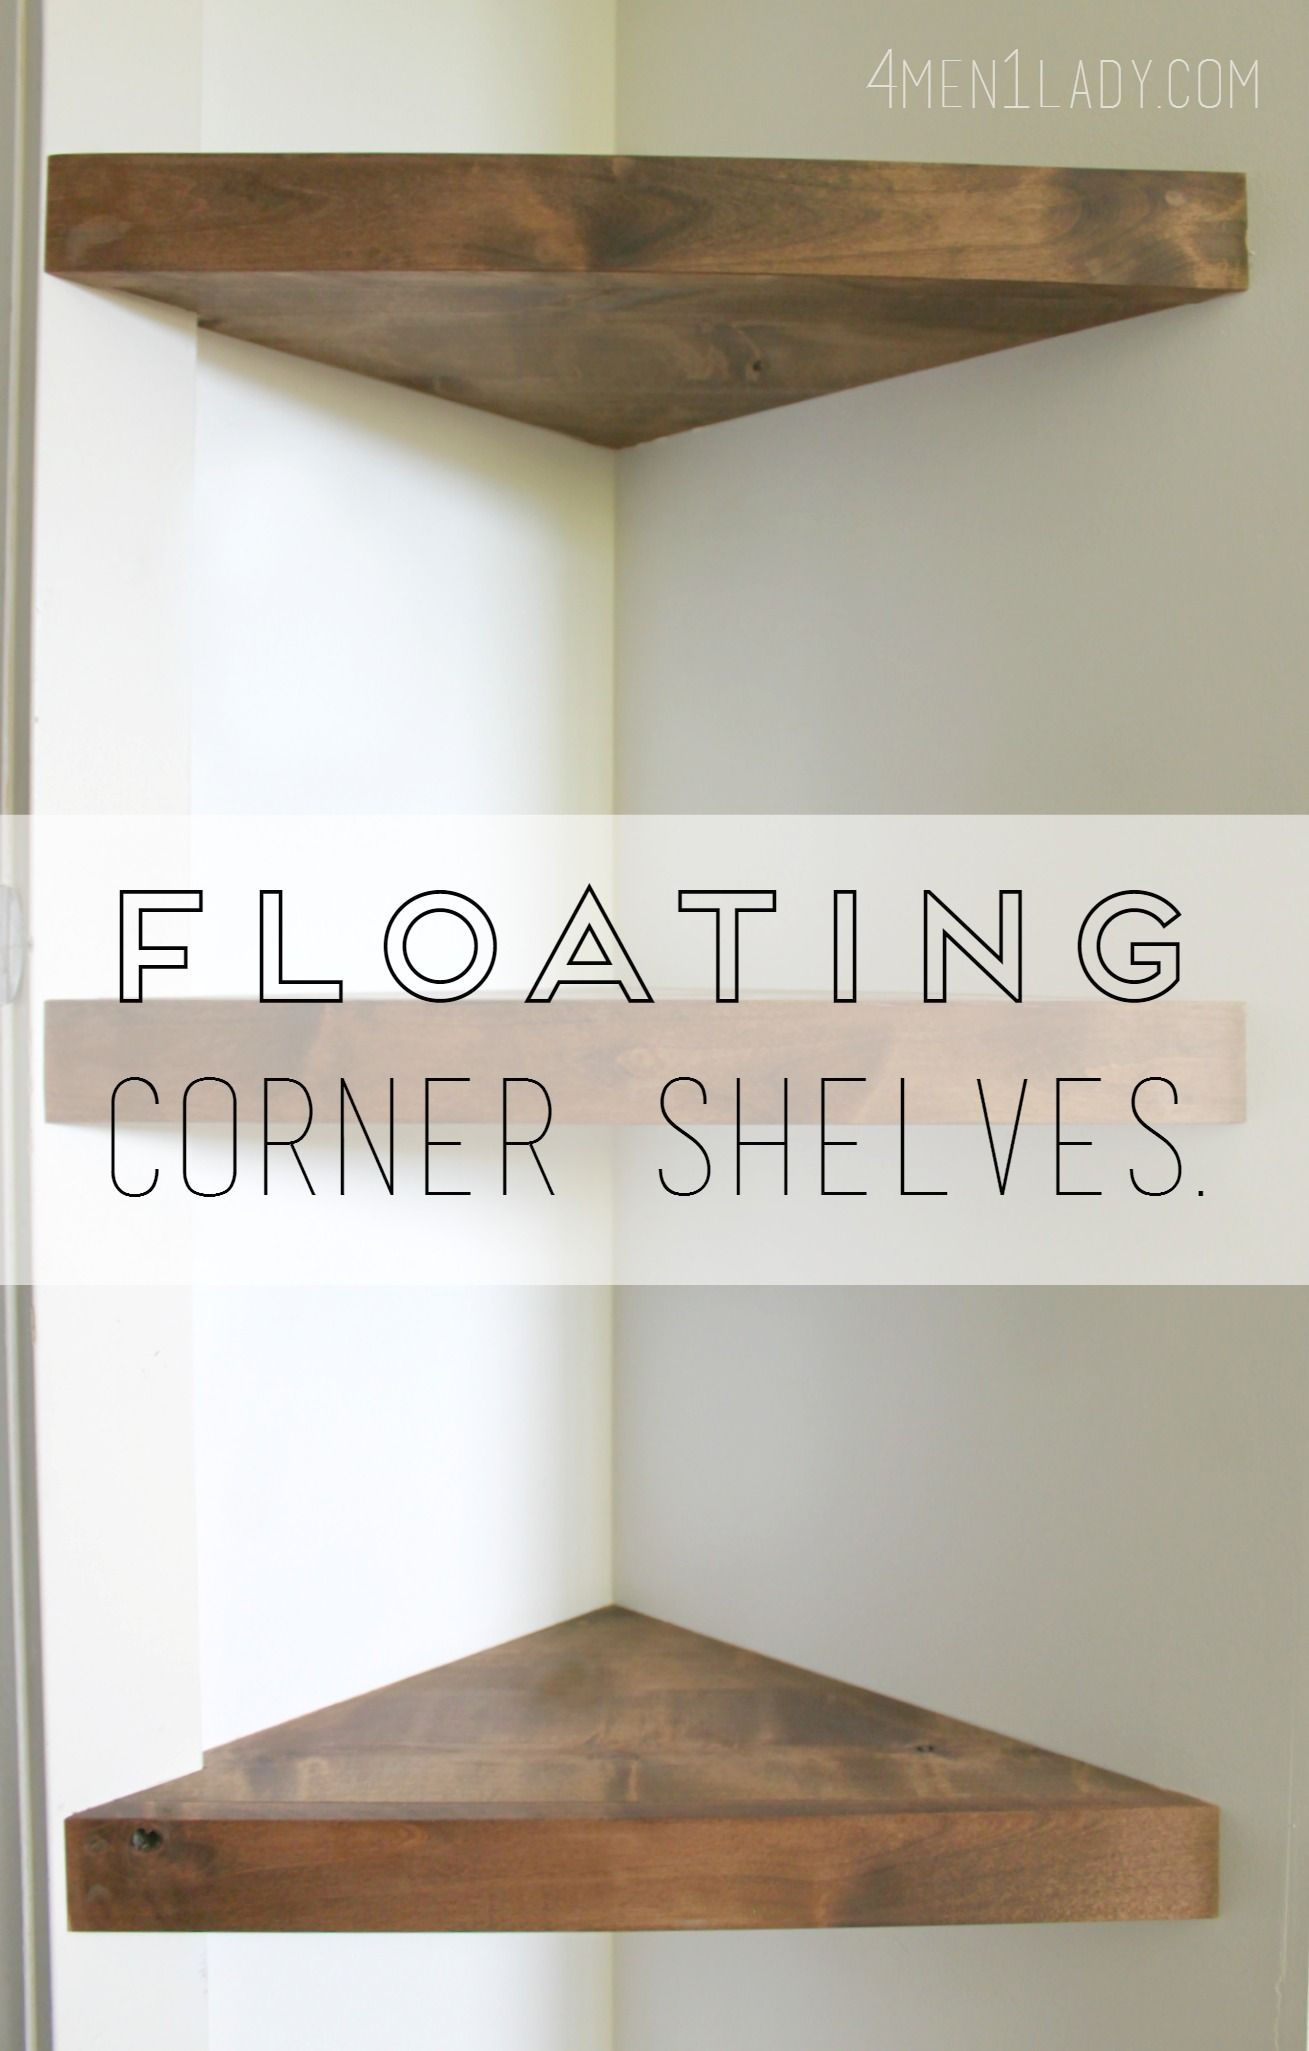 brilliantly creative diy shelving ideas apartment fixes heavy duty floating corner shelf img shelves kitchen bedroom rustic fancy wall mount entertainment center coat hanger white